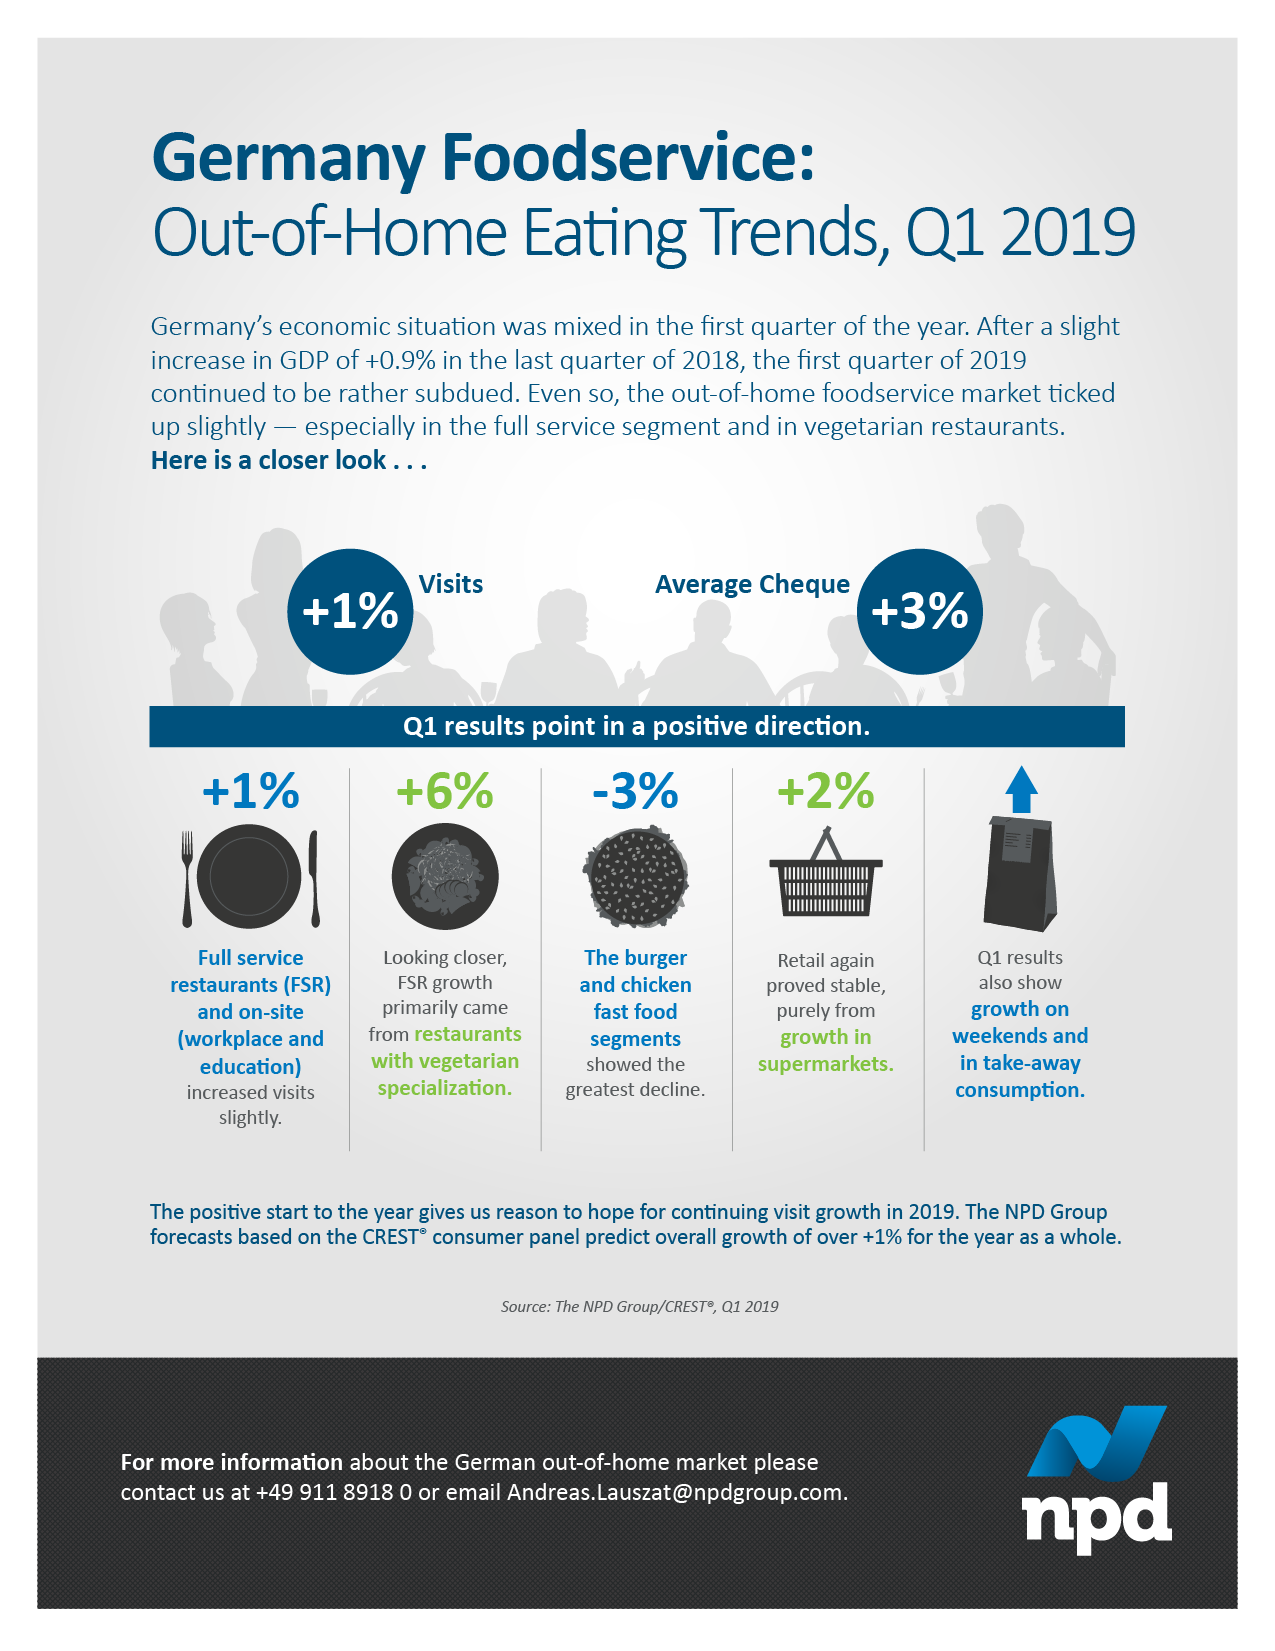 Out-of-home foodservice market ticked up slightly — especially in the full-service segment and in vegetarian restaurants.